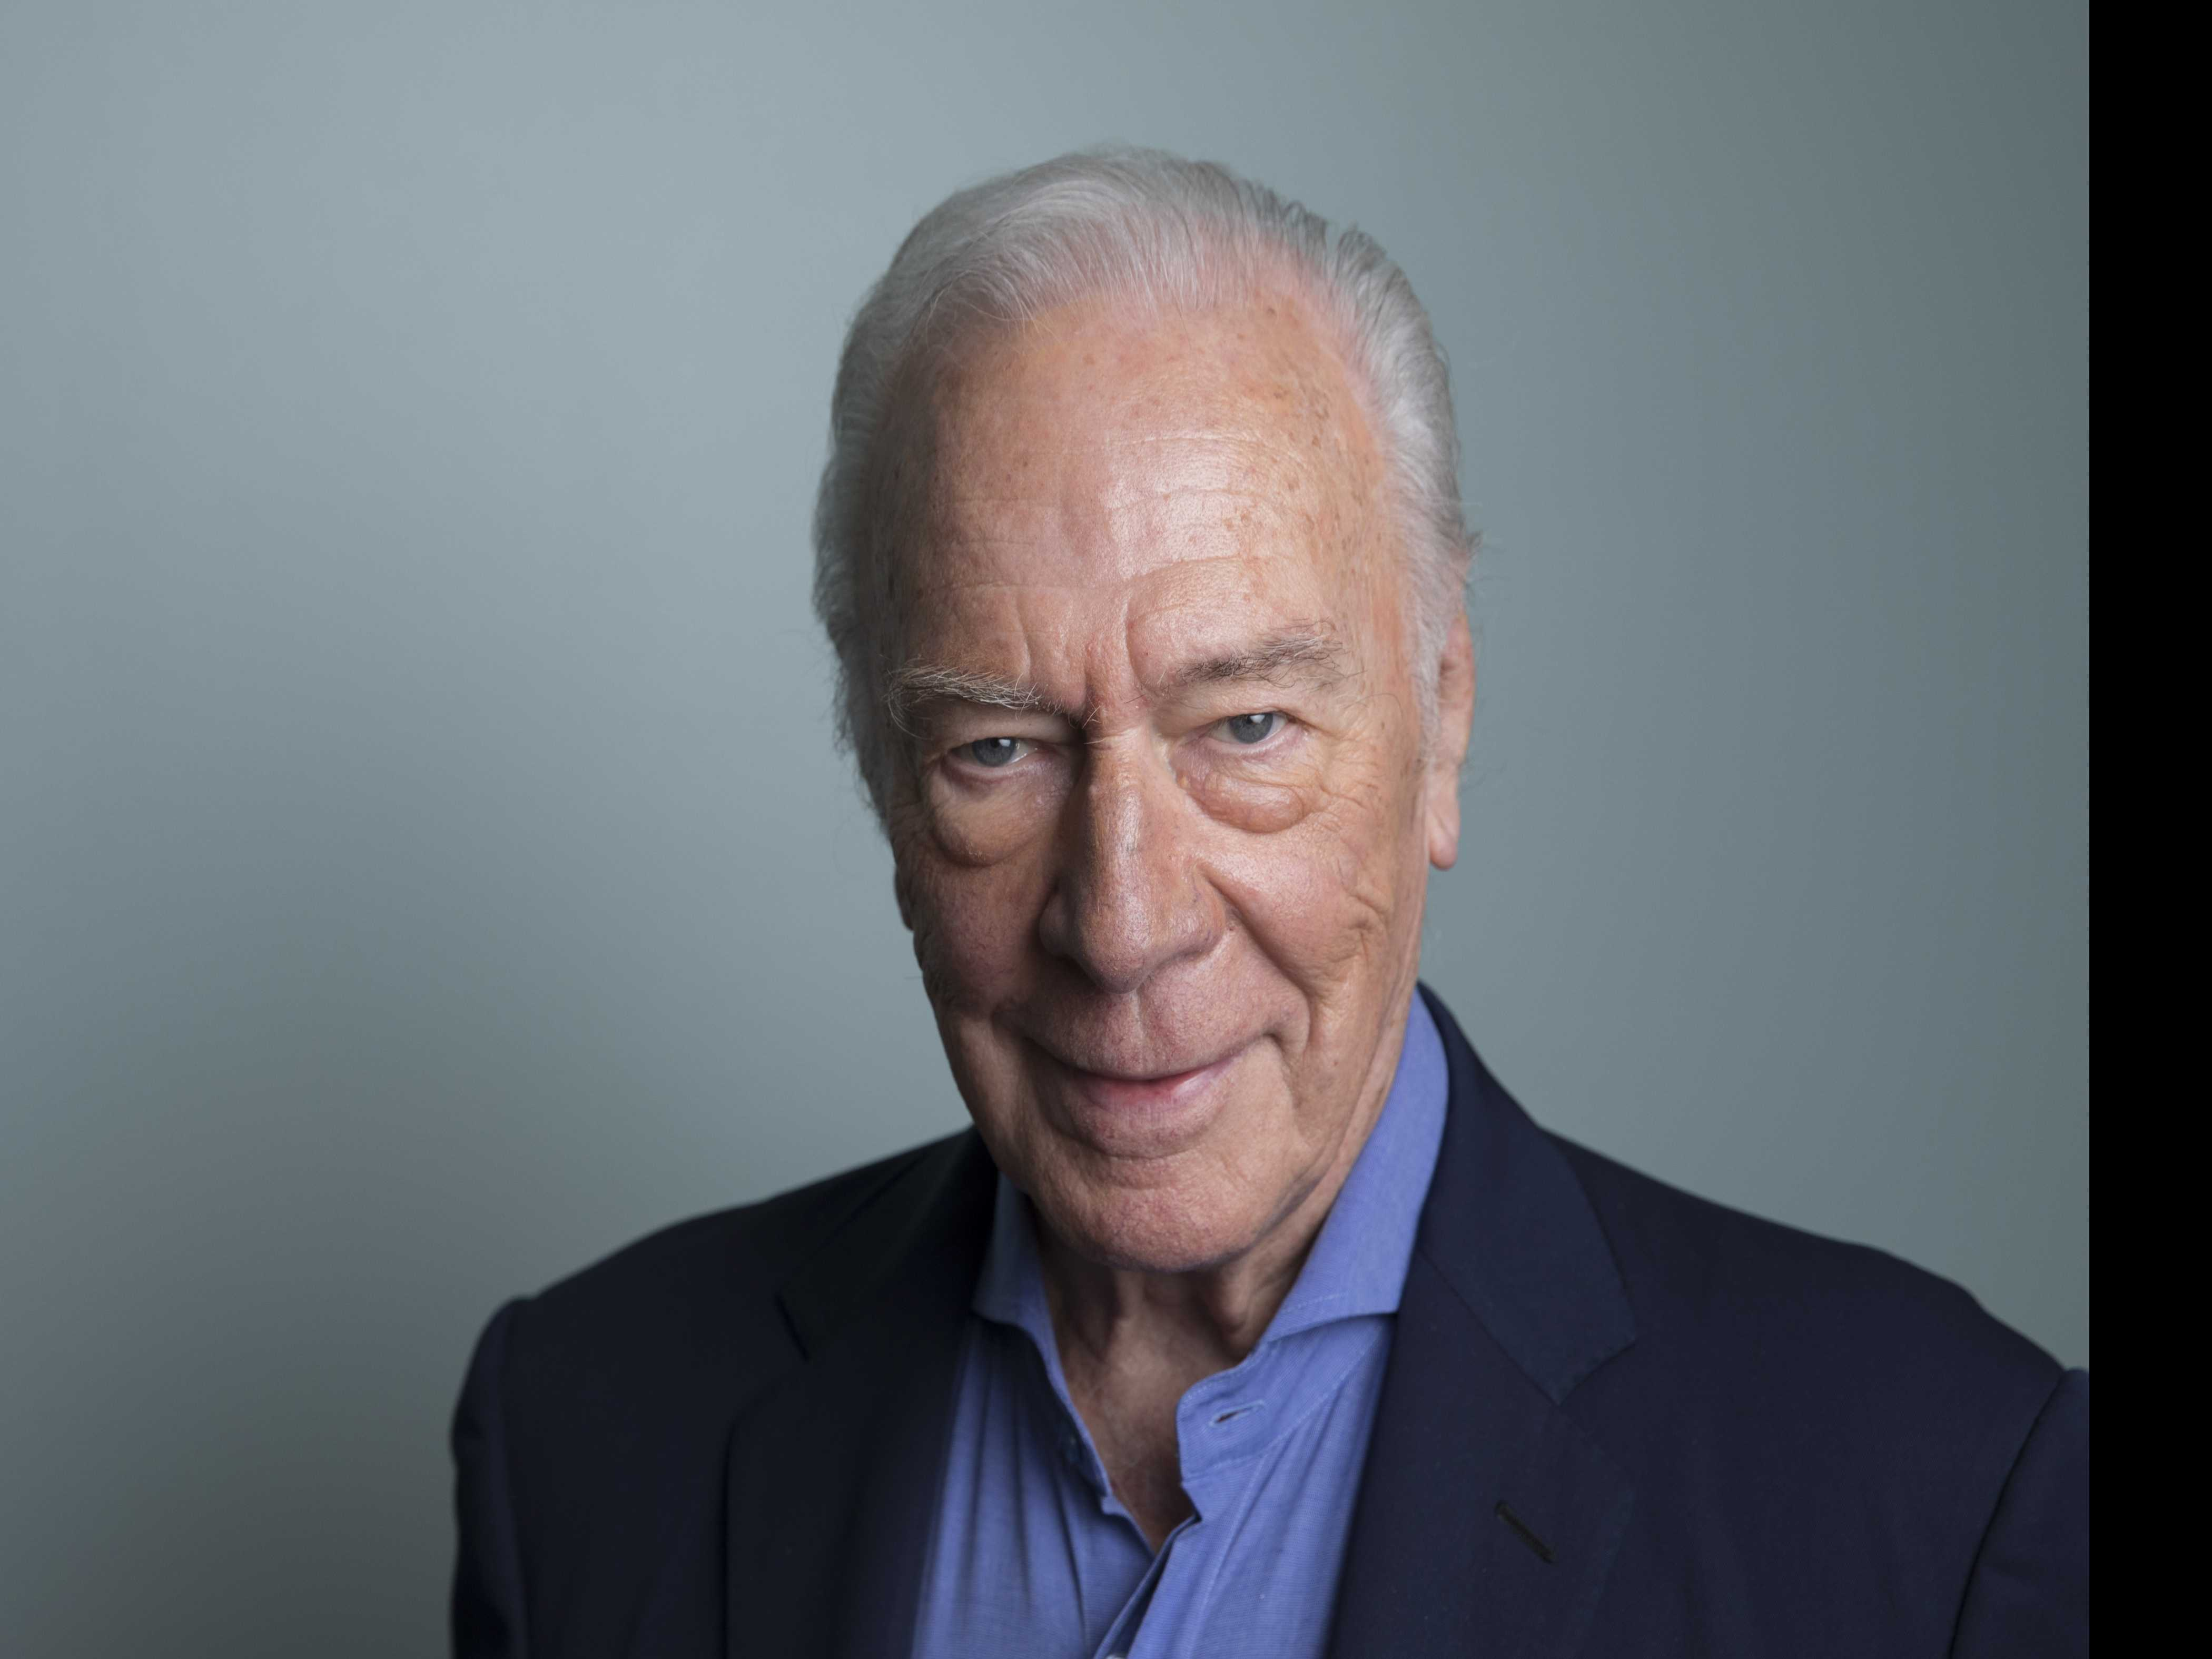 Q&A: Christopher Plummer on Playing a Weed Dealer at 88